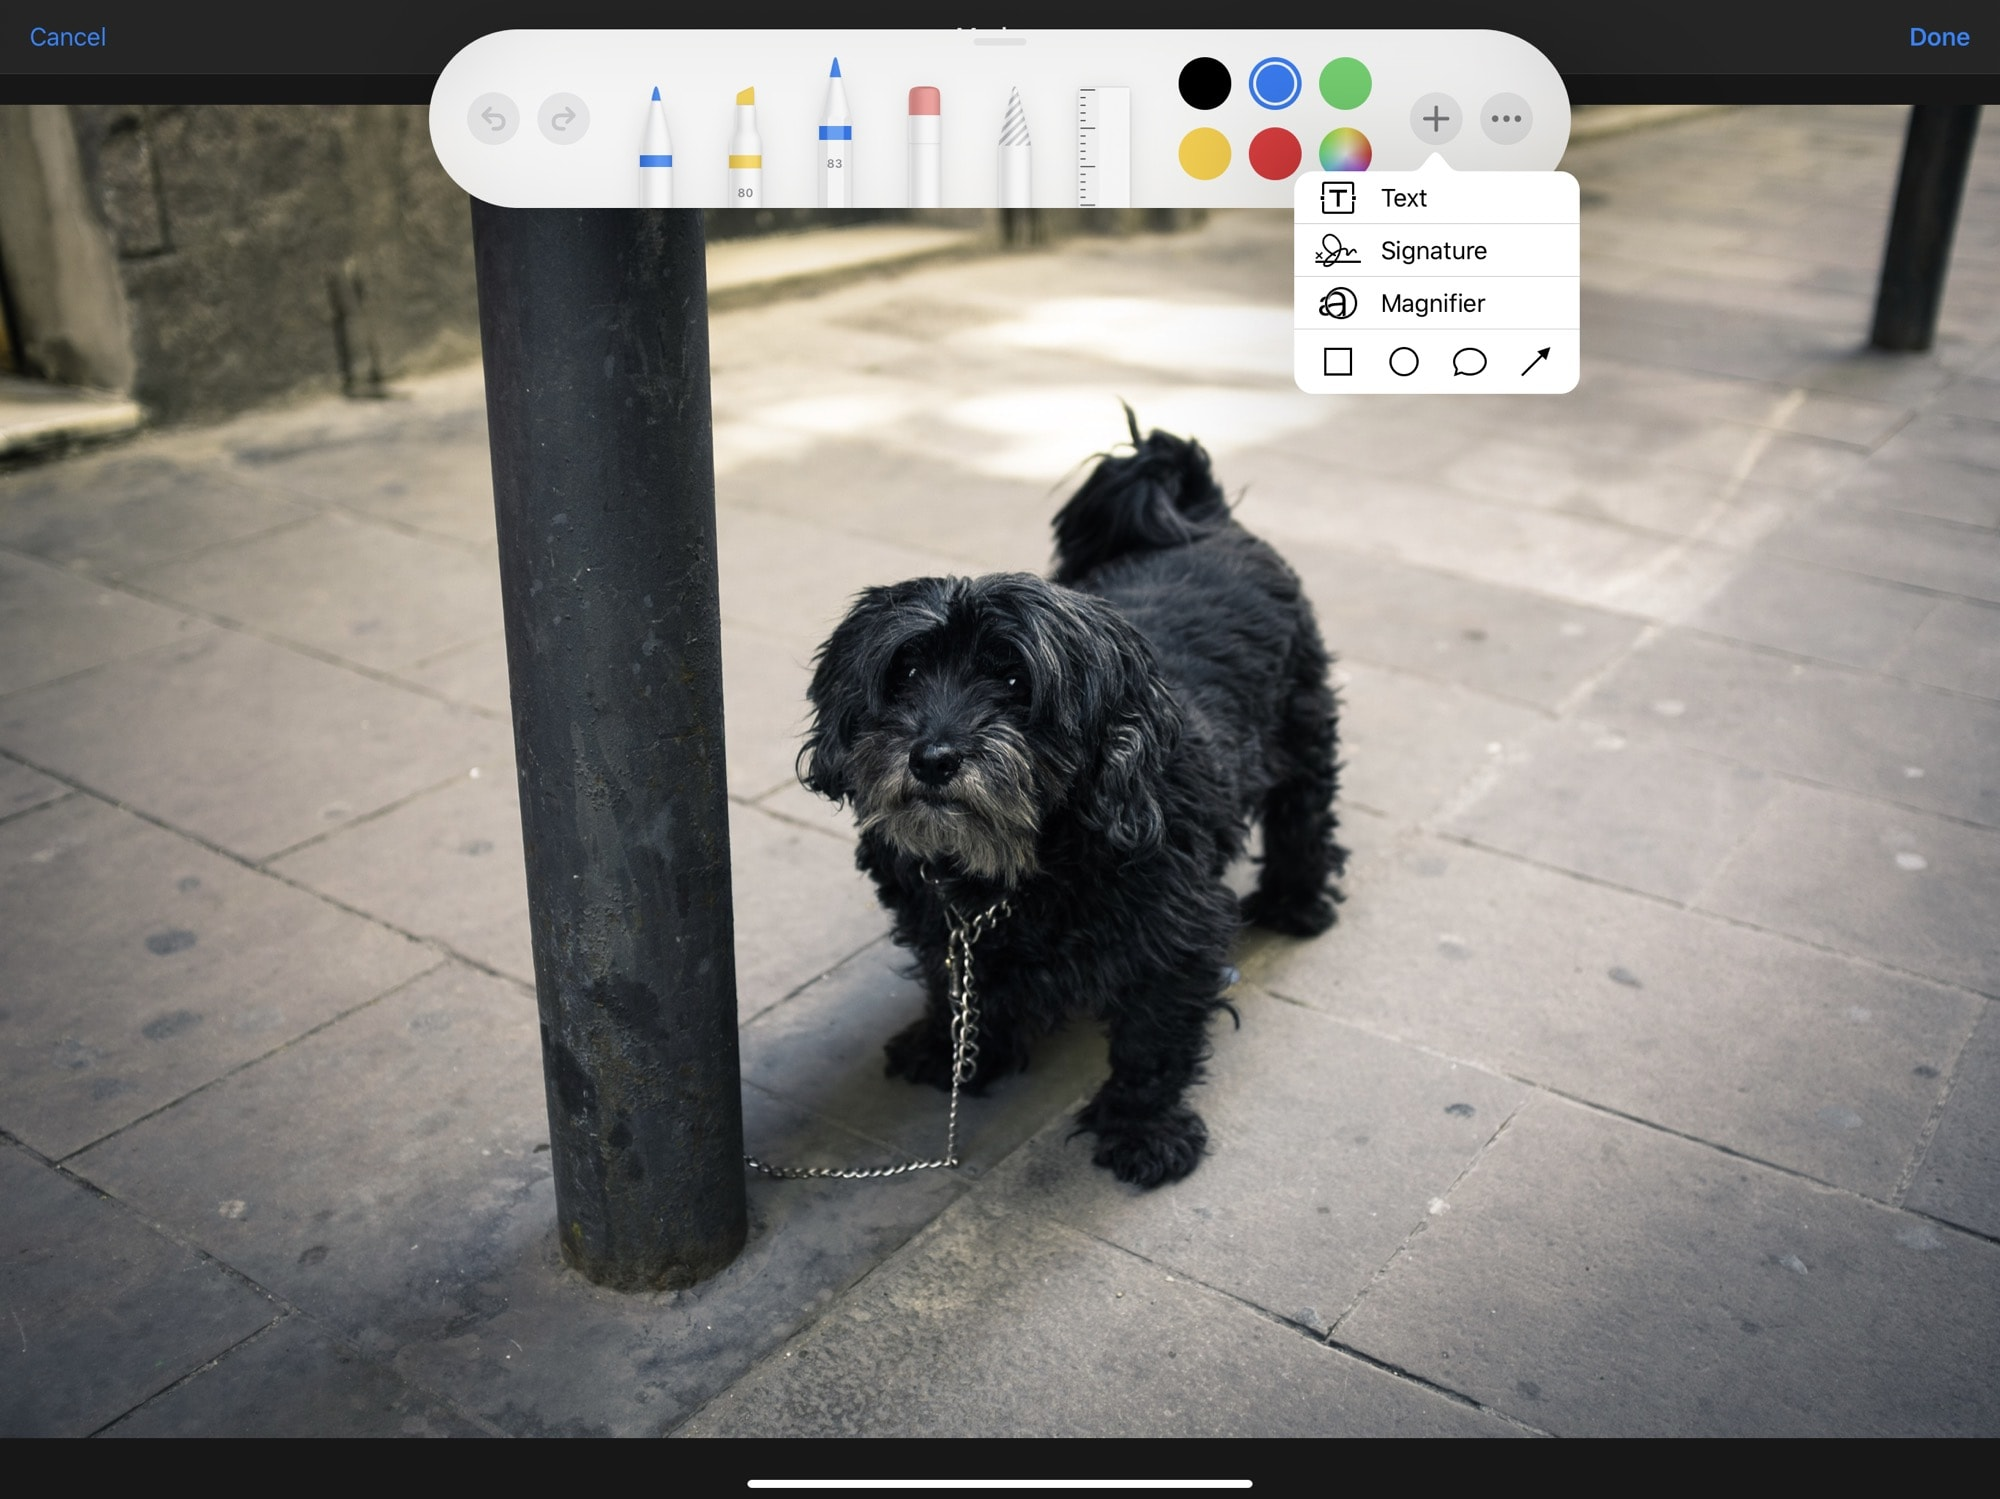 The built-in iOS Markup tool can add captions to any photo.